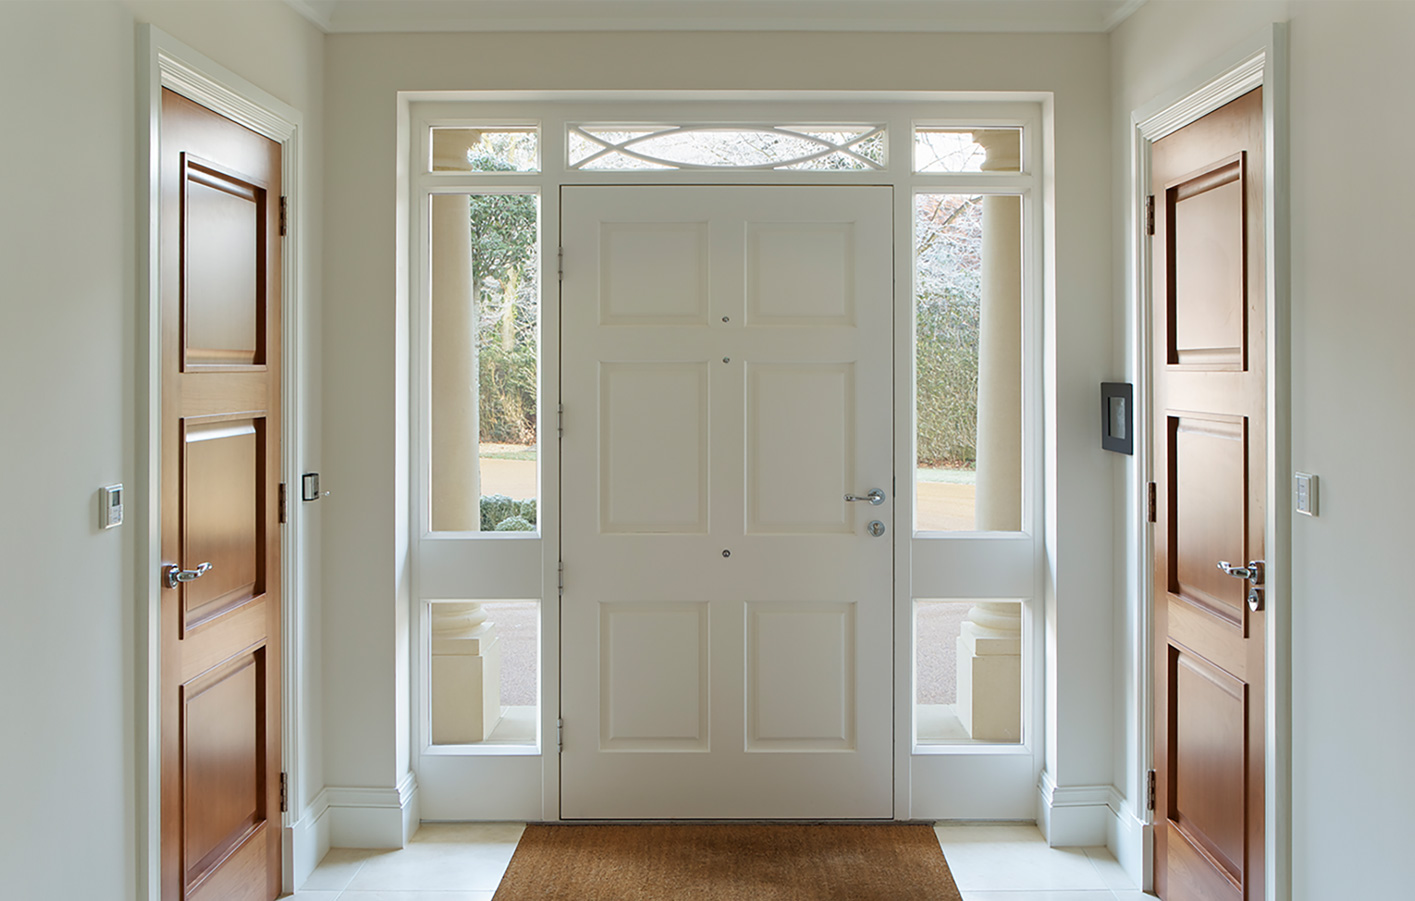 Haustuer_IS_2015_02_MS_01.jpg